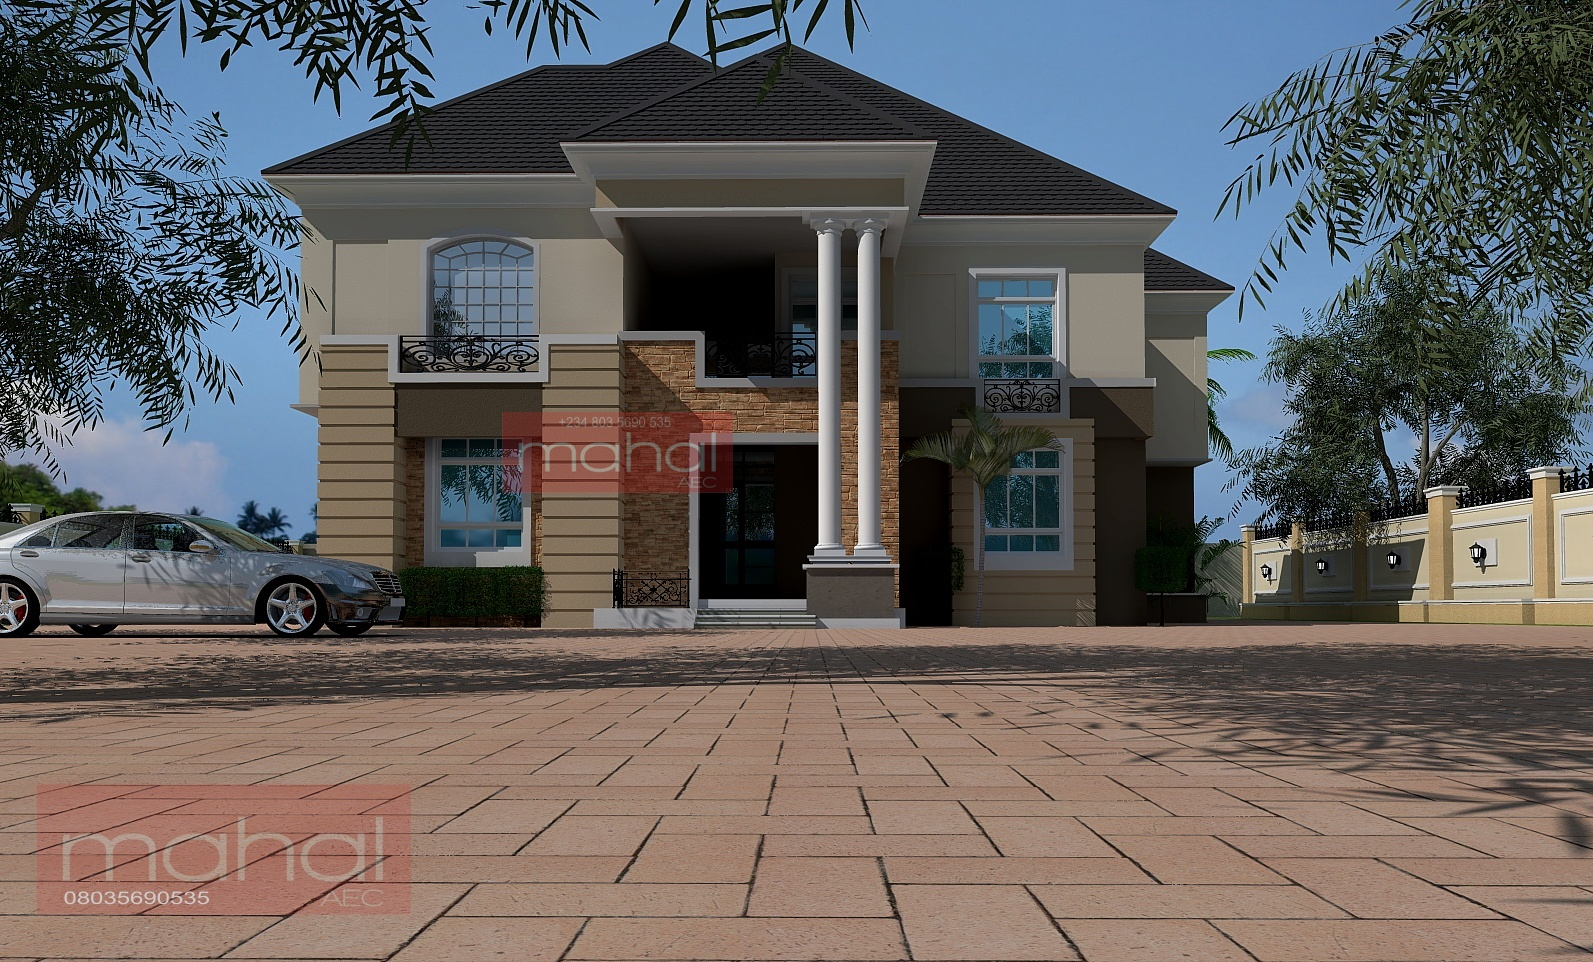 Contemporary Nigerian Residential Architecture Luxury 3: Contemporary Nigerian Residential Architecture: 6 Bedroom